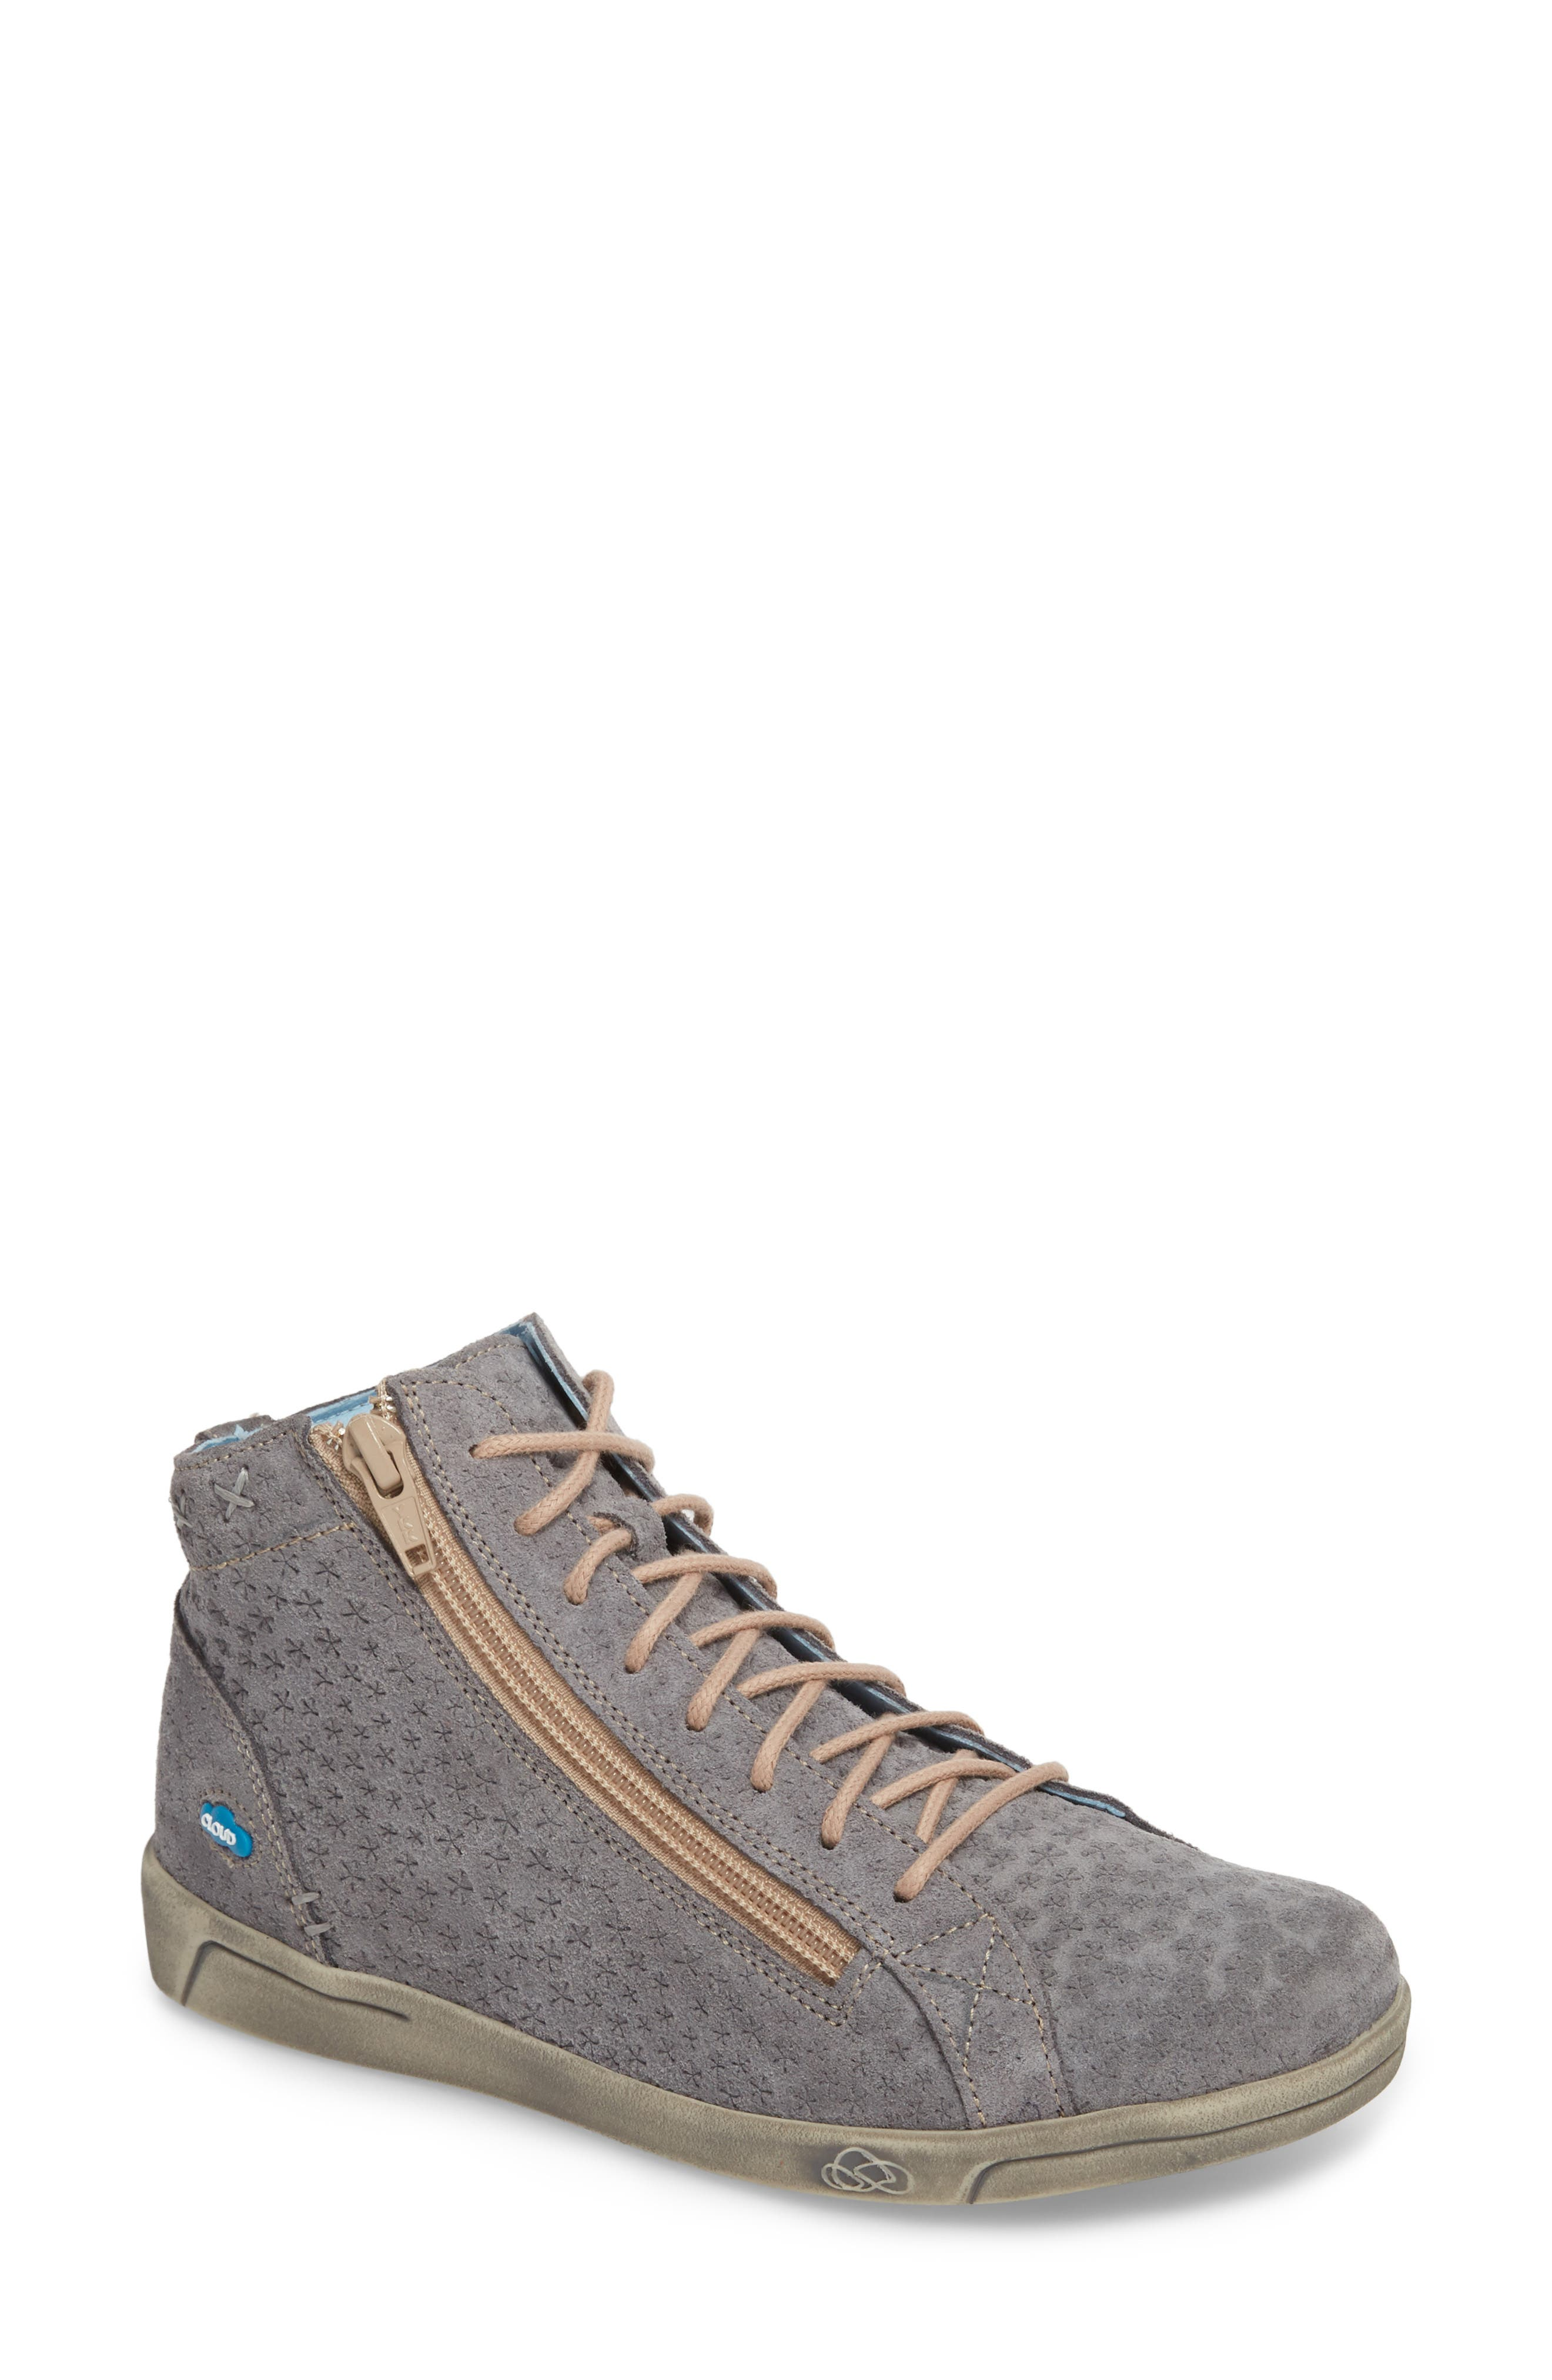 Aika Star Perforated High Top Sneaker,                         Main,                         color, Grey Leather